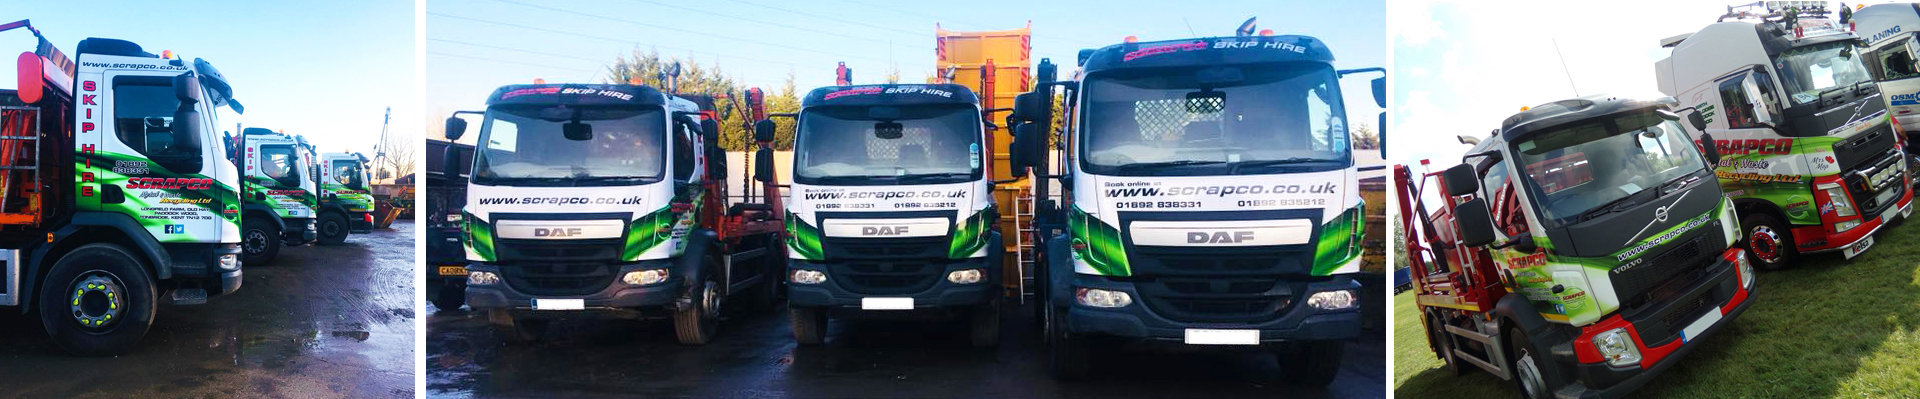 Scrapco Skip Hire Lorries at the transfer station in Paddock Wood